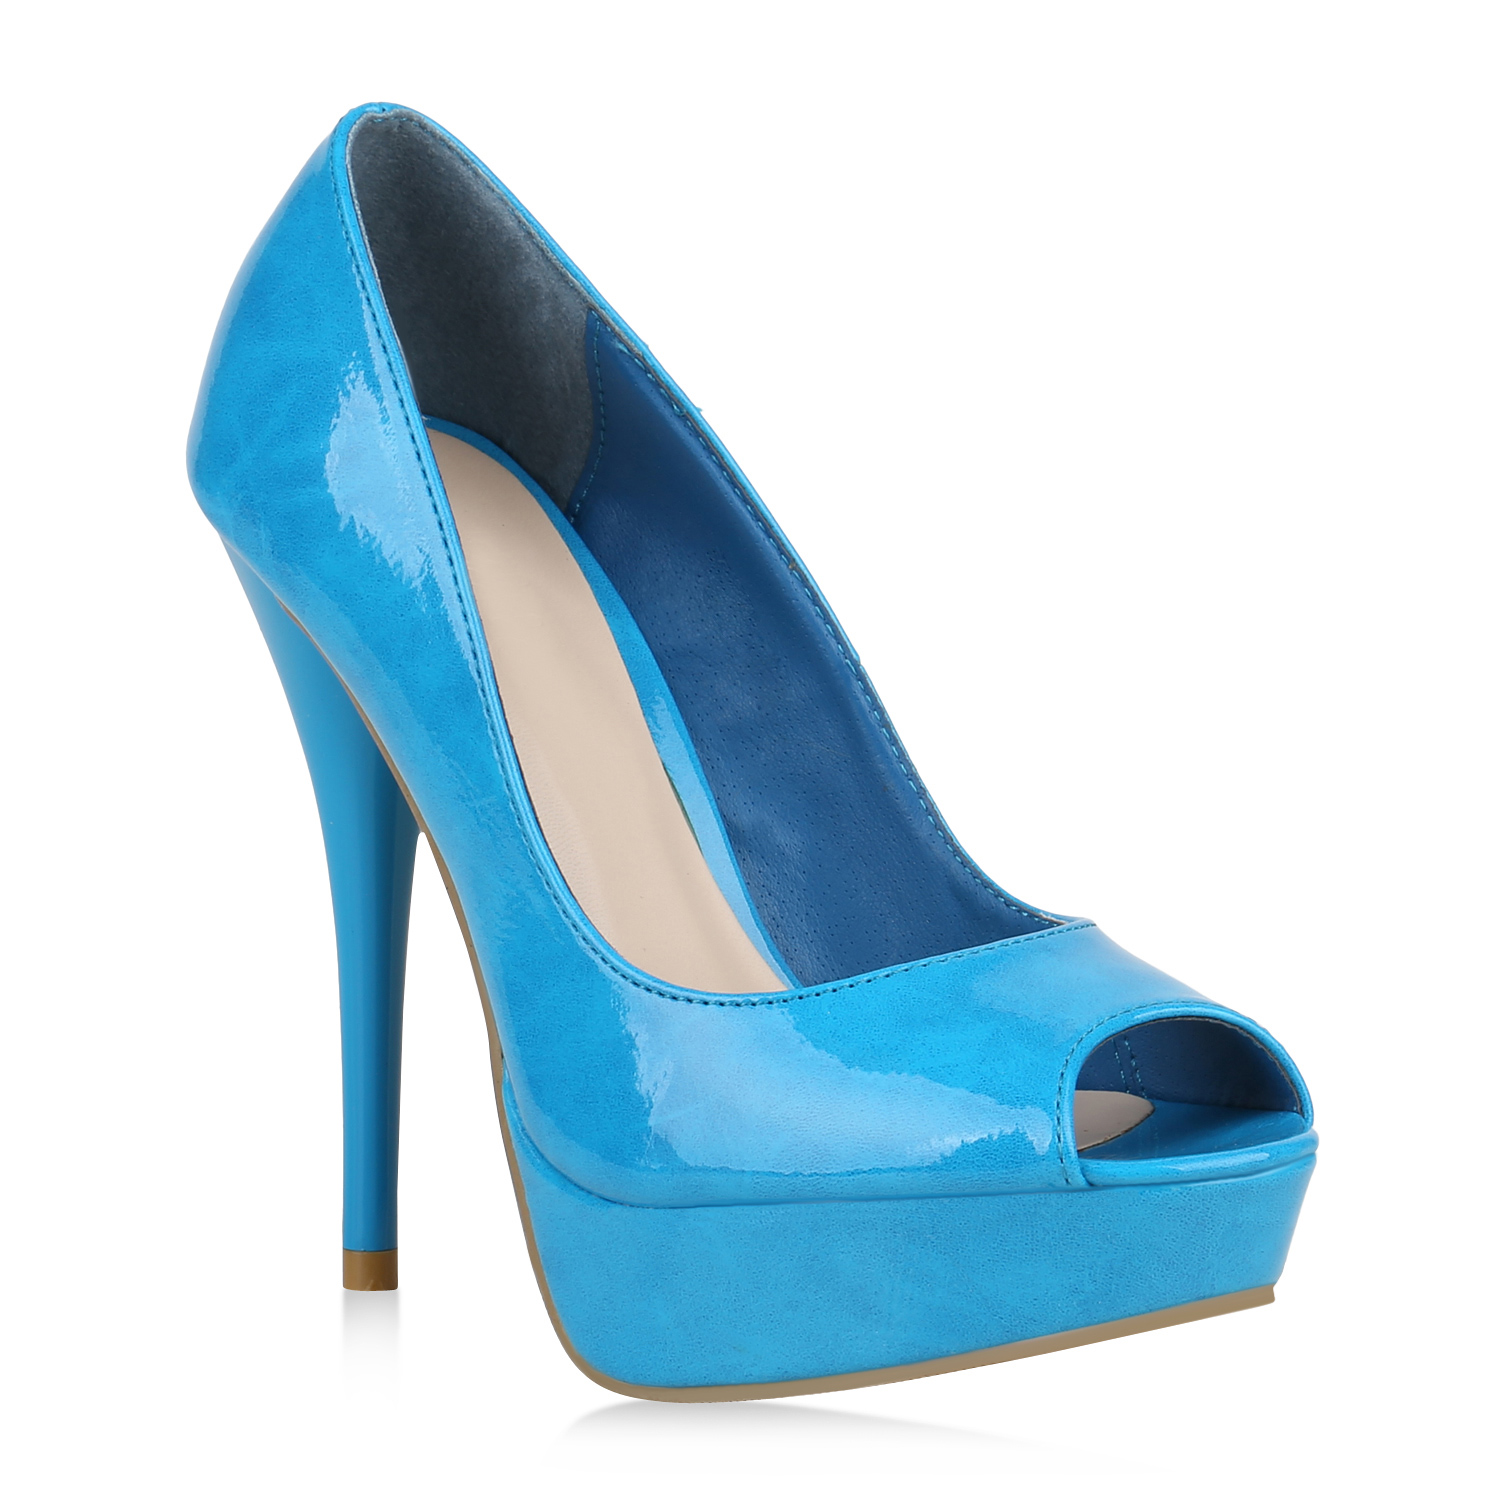 Damen Pumps Peeptoes - Hellblau